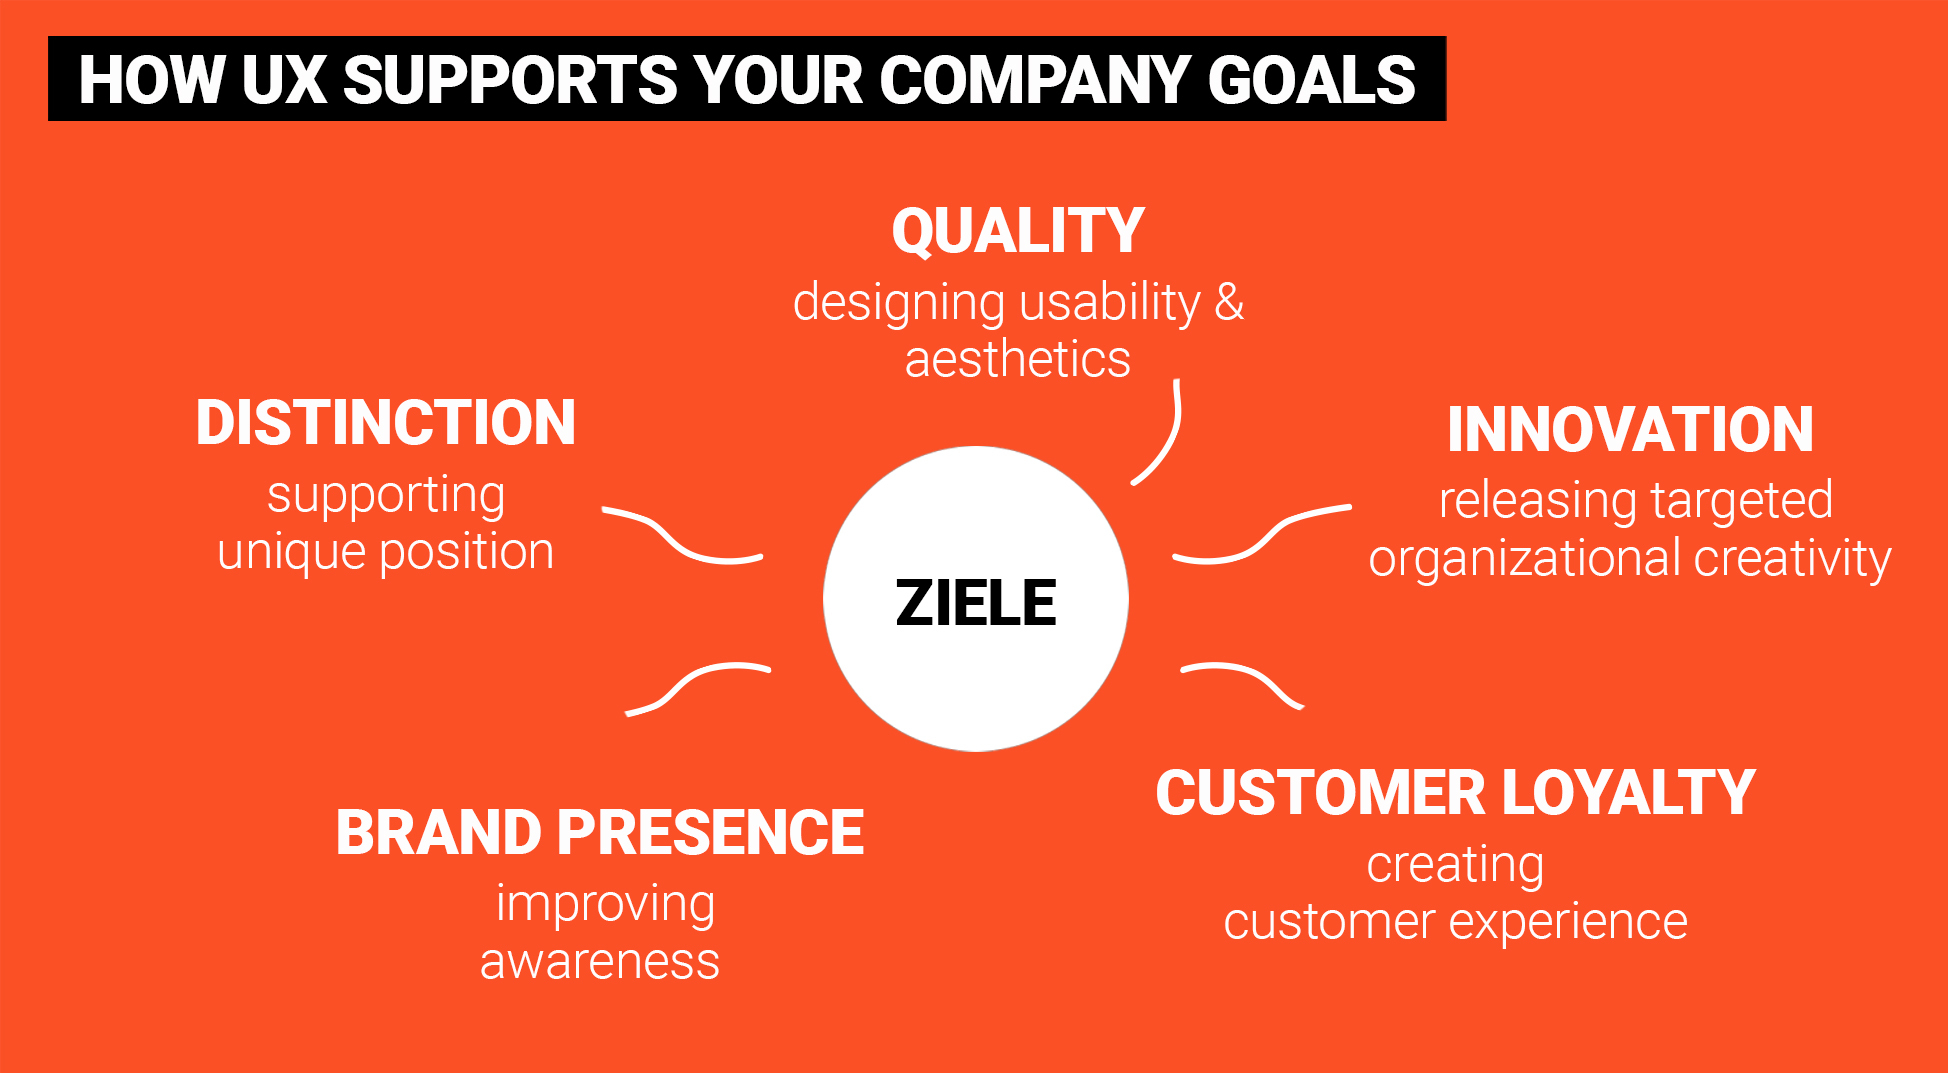 We definiere, what goals user experience should foster in your company in the future.